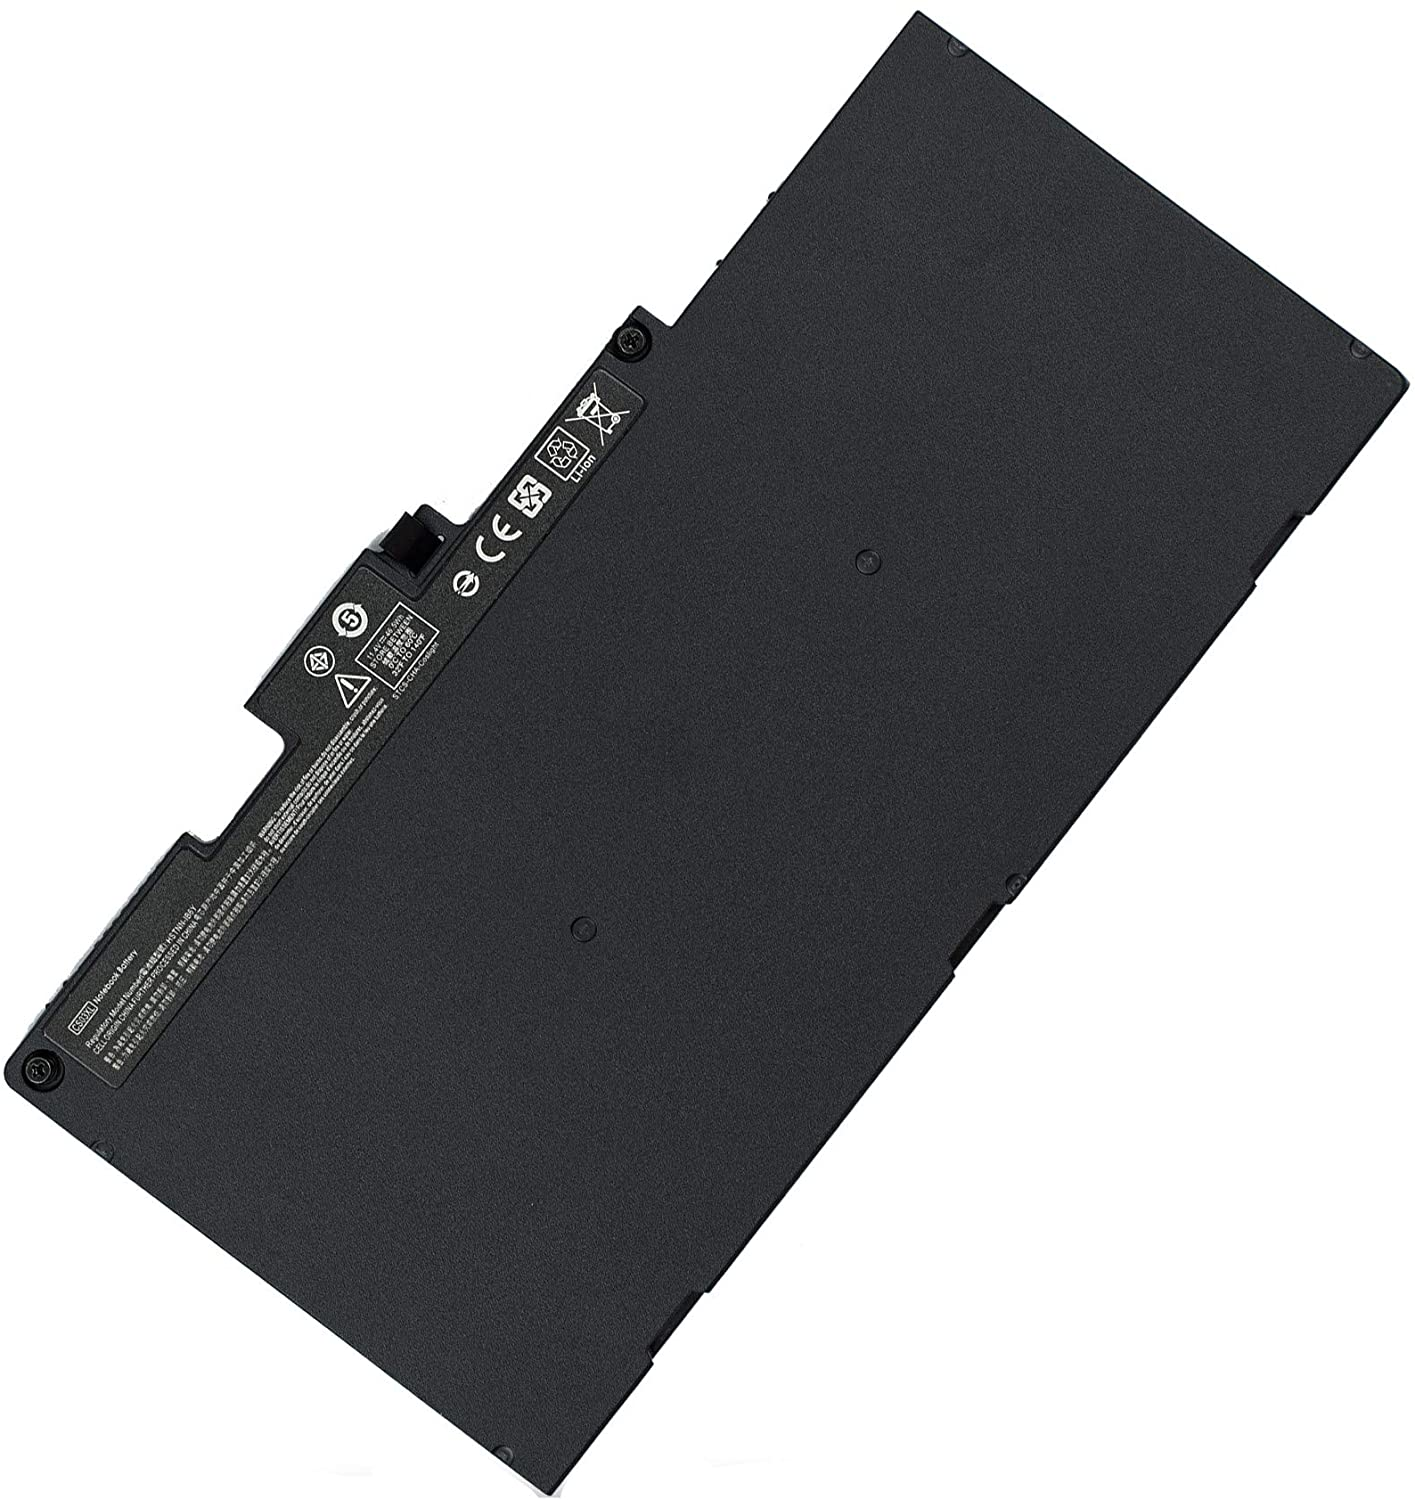 CS03XL Laptop Battery for HP EliteBook 745 755 840 850 G3 G4 848 G3 ZBook 15u G3 G4 mt42 mt43 Series Notebook 800513-001 800231-